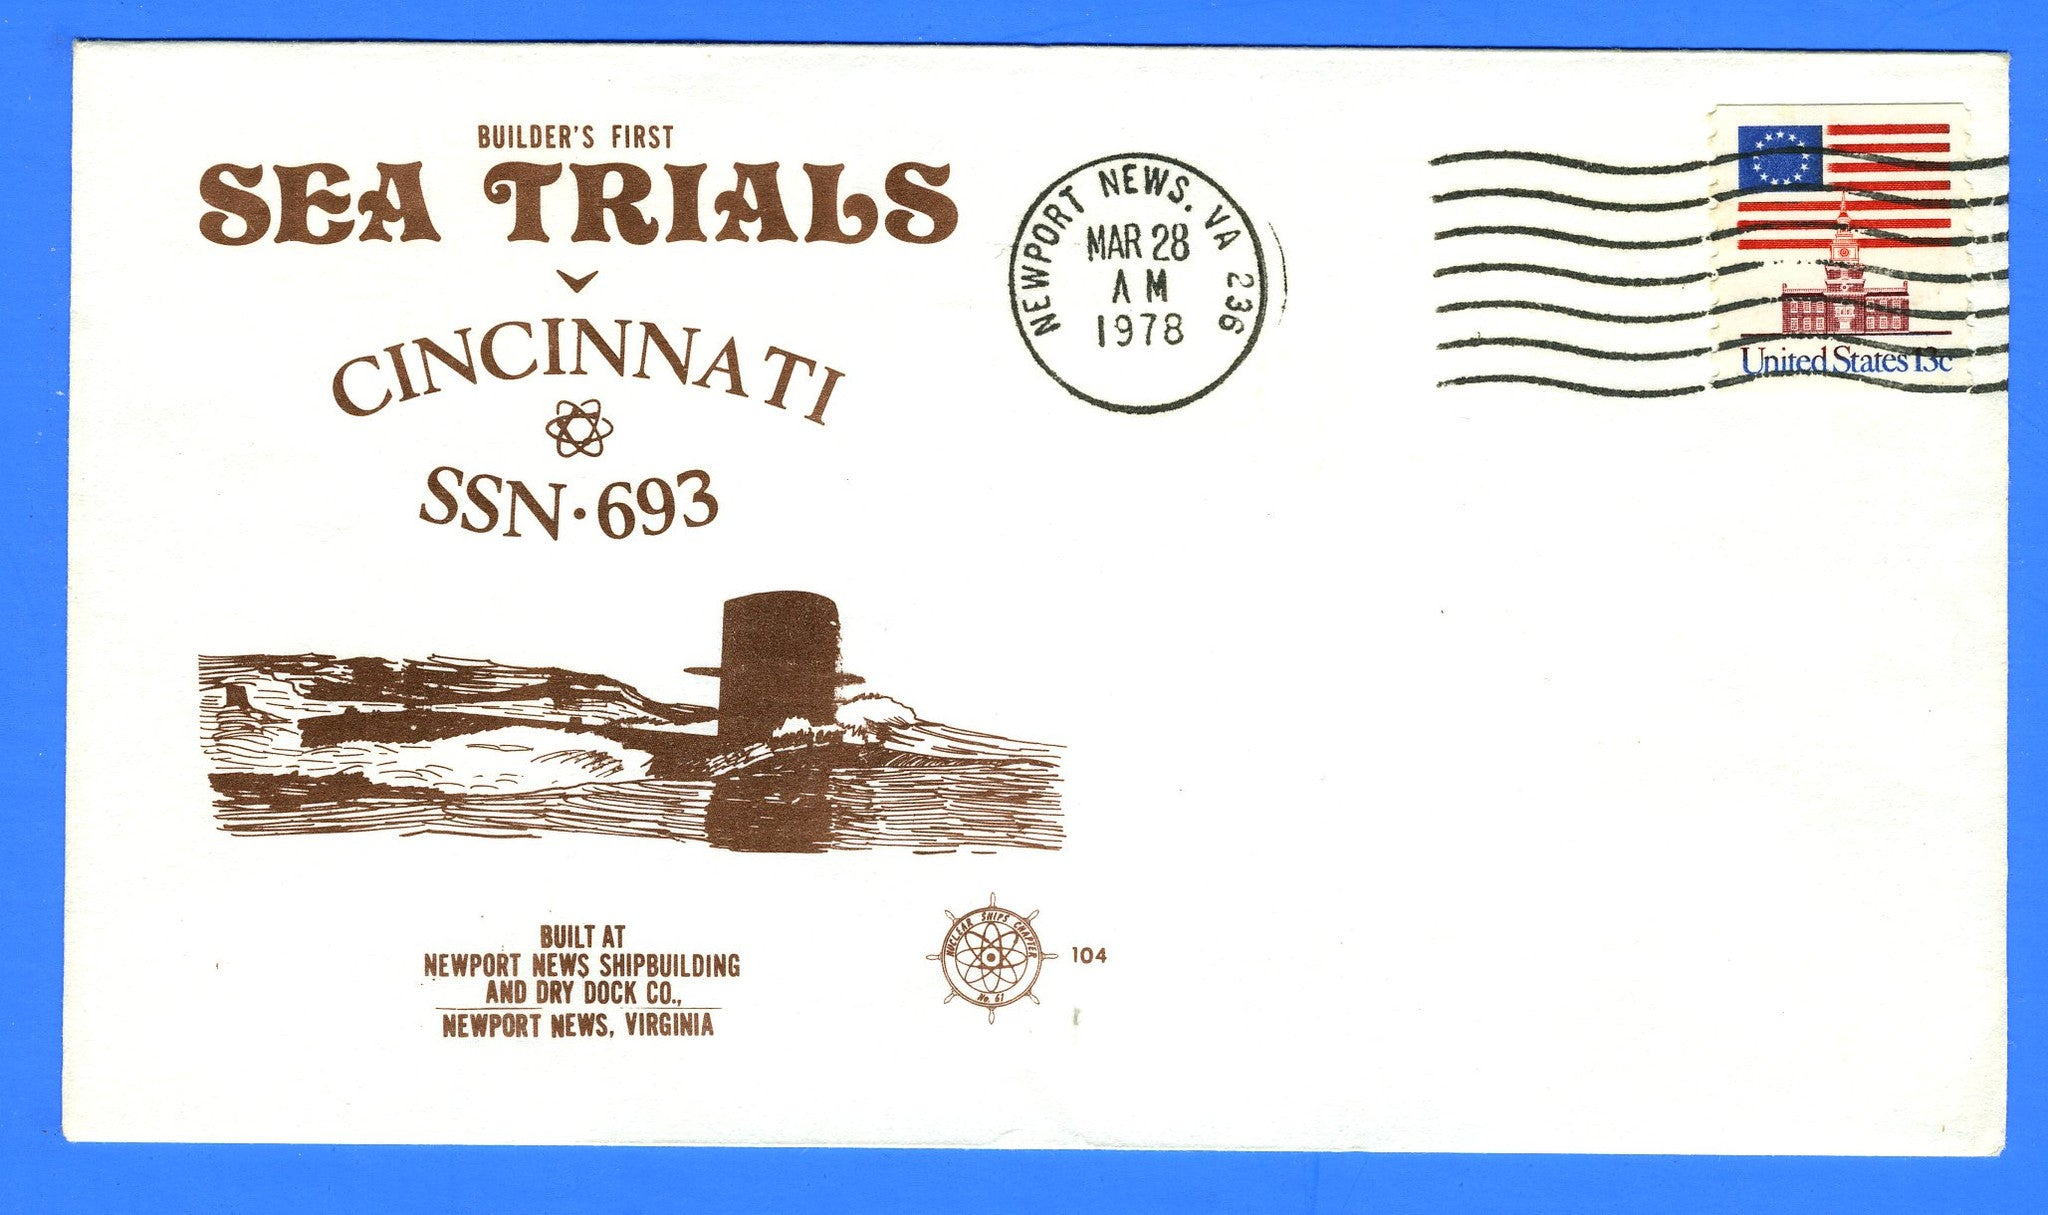 USS Cincinnati SSN-693 First Sea Trials March 28, 1978 - Cachet Maker USCS Chapter 61 Nuclear Ships